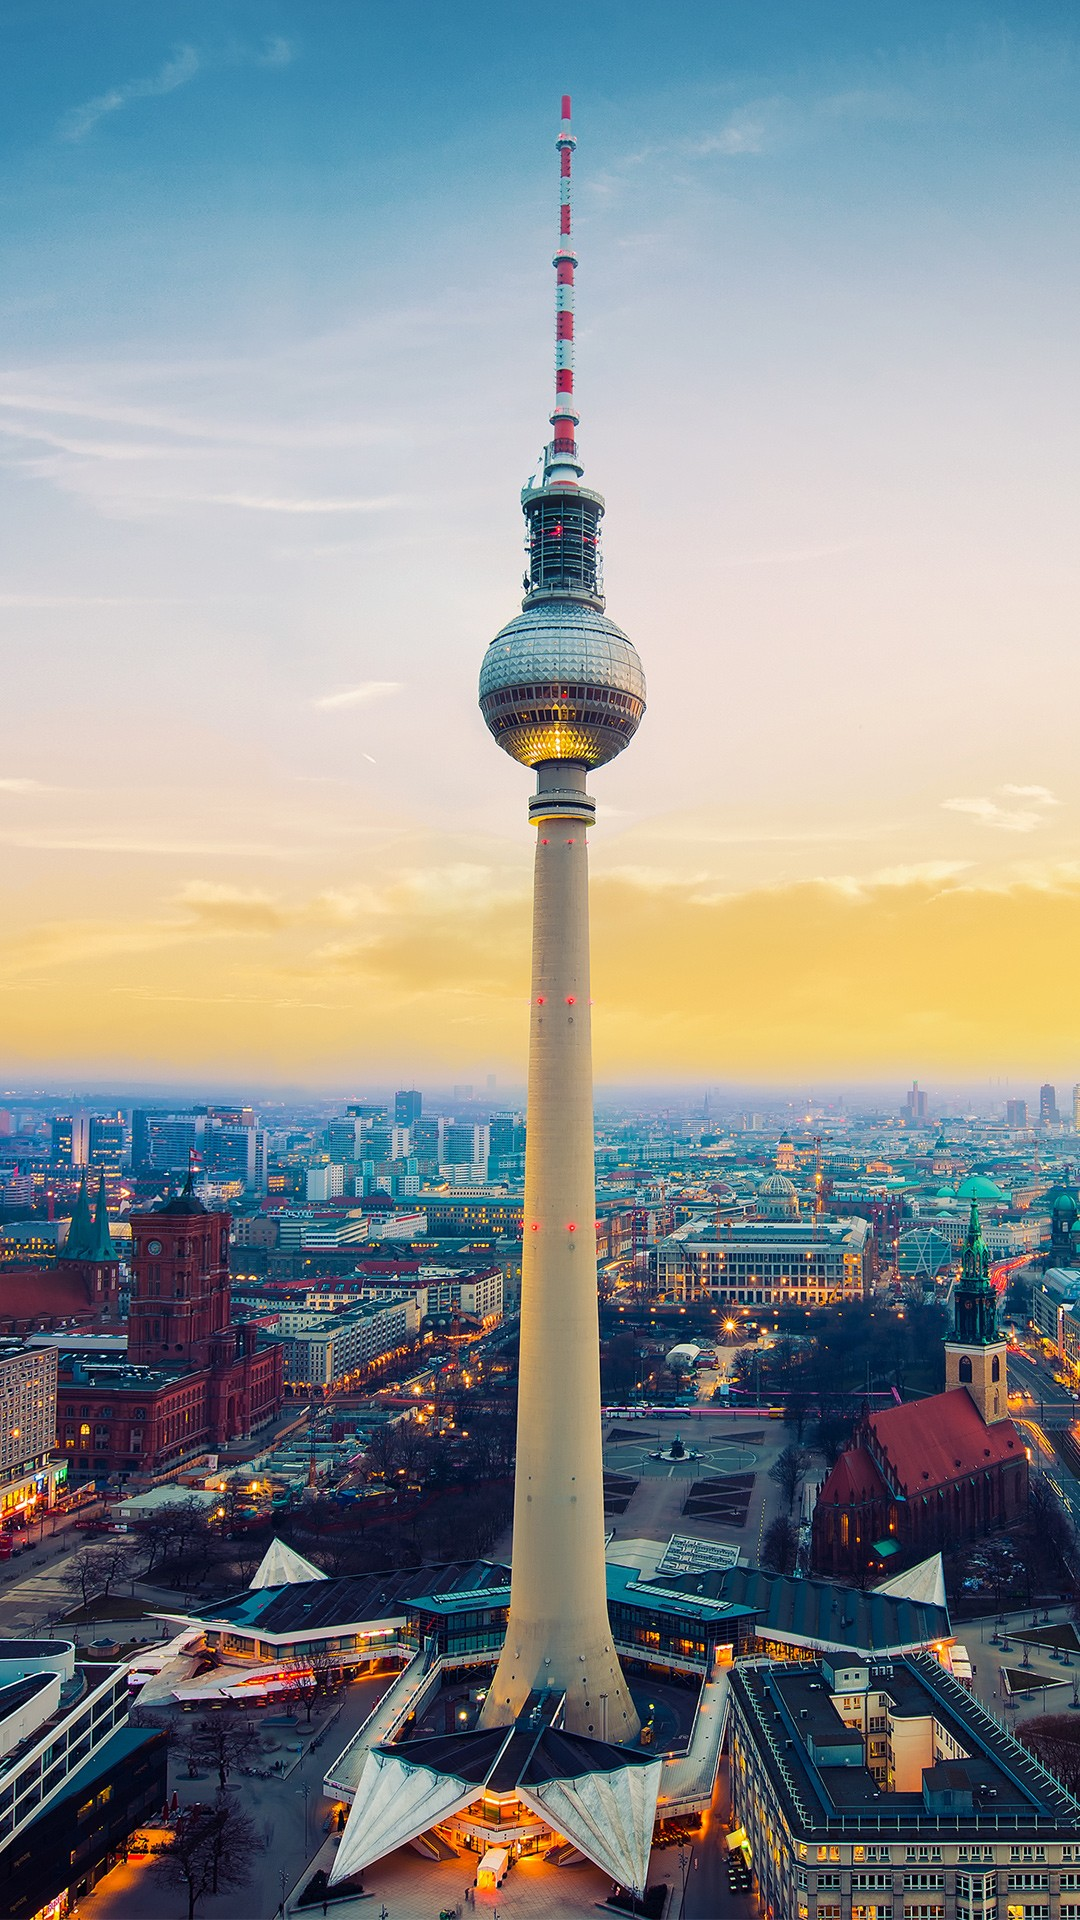 Ultra Hd Wallpapers Iphone X Fernsehturm Berlin Tv Tower Germany Wallpapers Hd